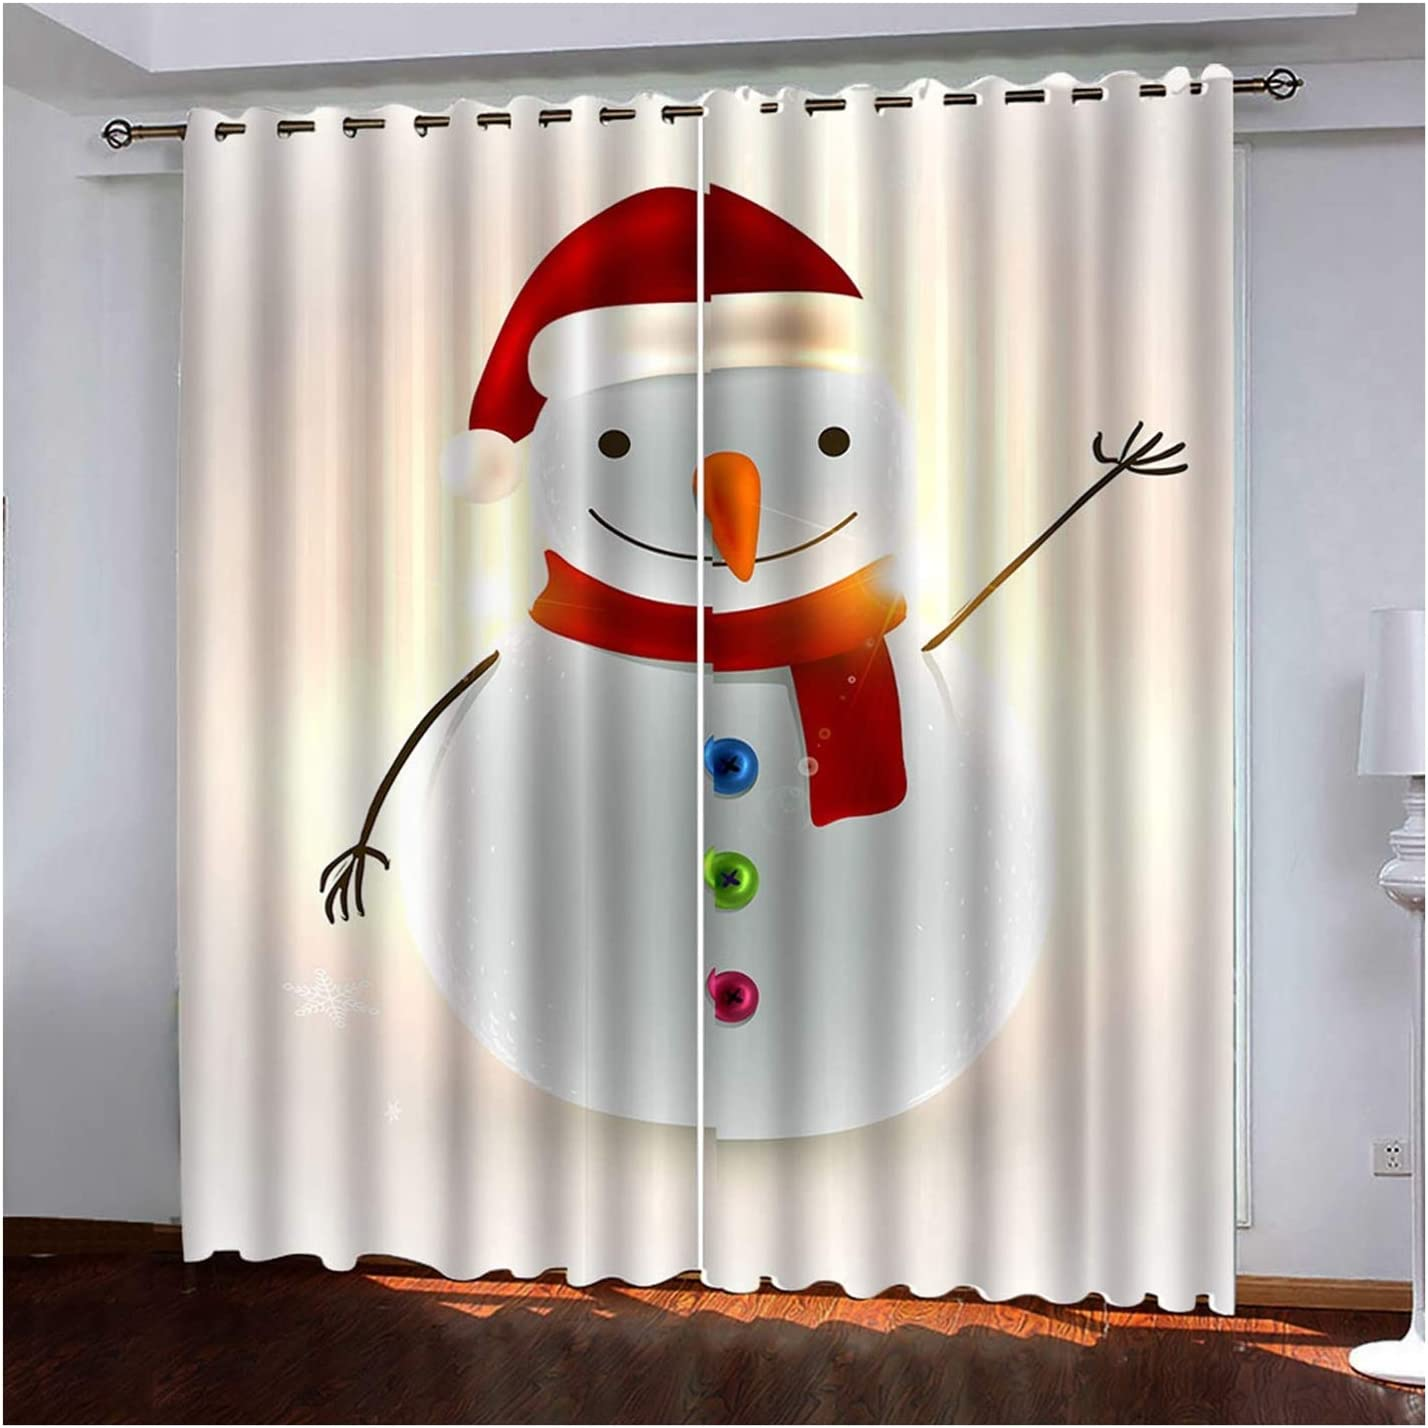 Daesar Direct stock discount Christmas Curtains 2021 spring and summer new Blackout Panel fo 2